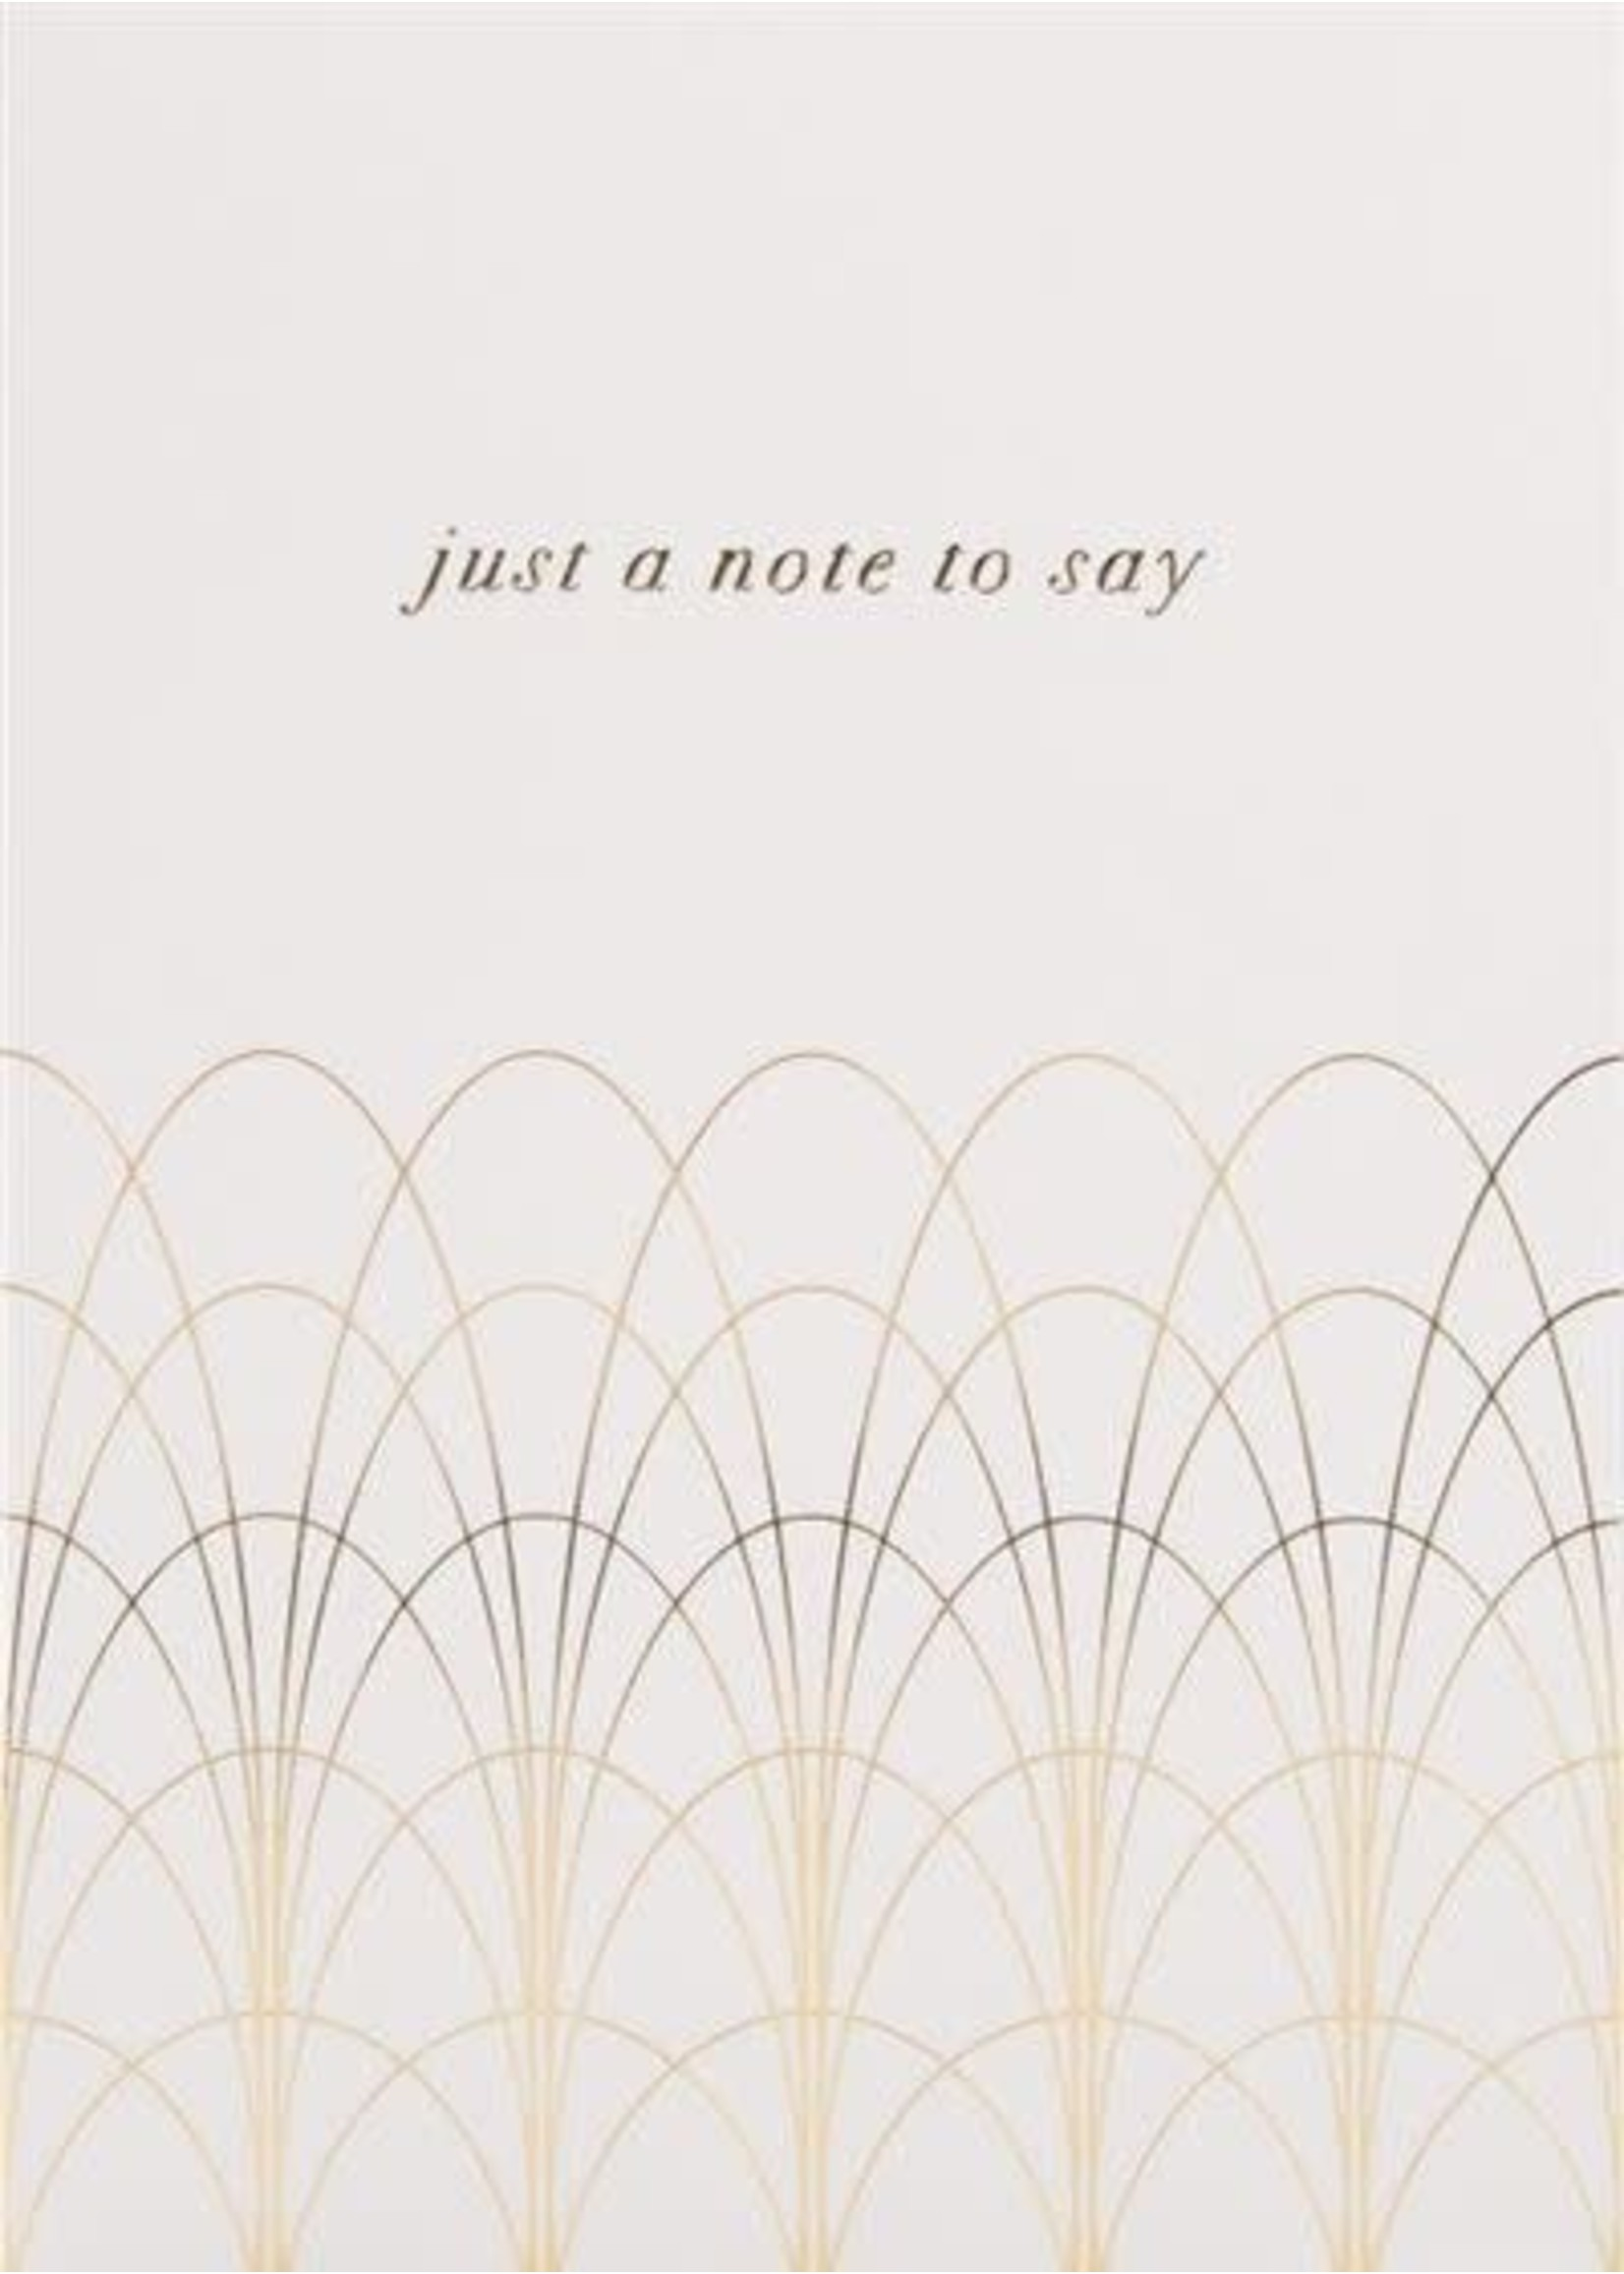 Design Design Note To Say Ornate Card - Think of You